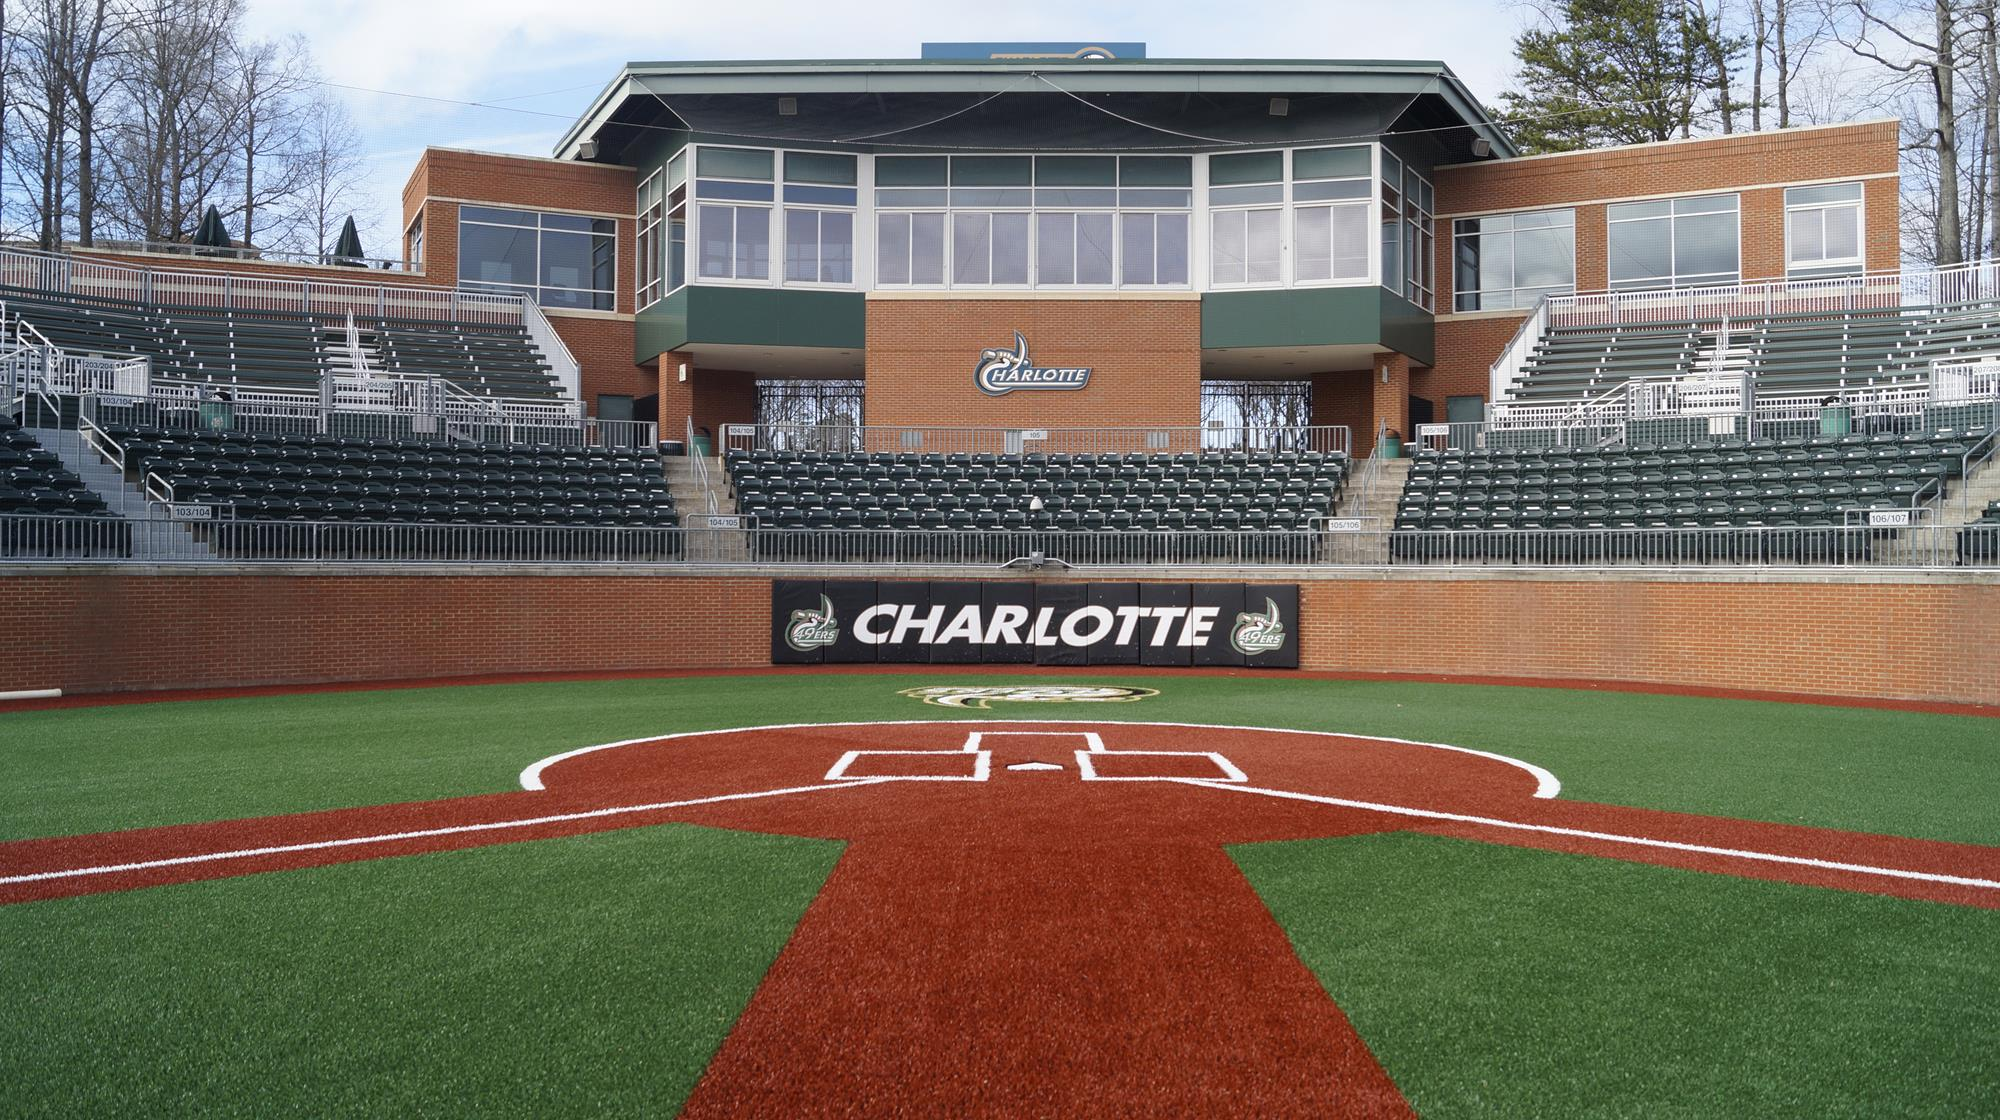 The Baseball field of the Charlotte 49ers at Hayes Stadium